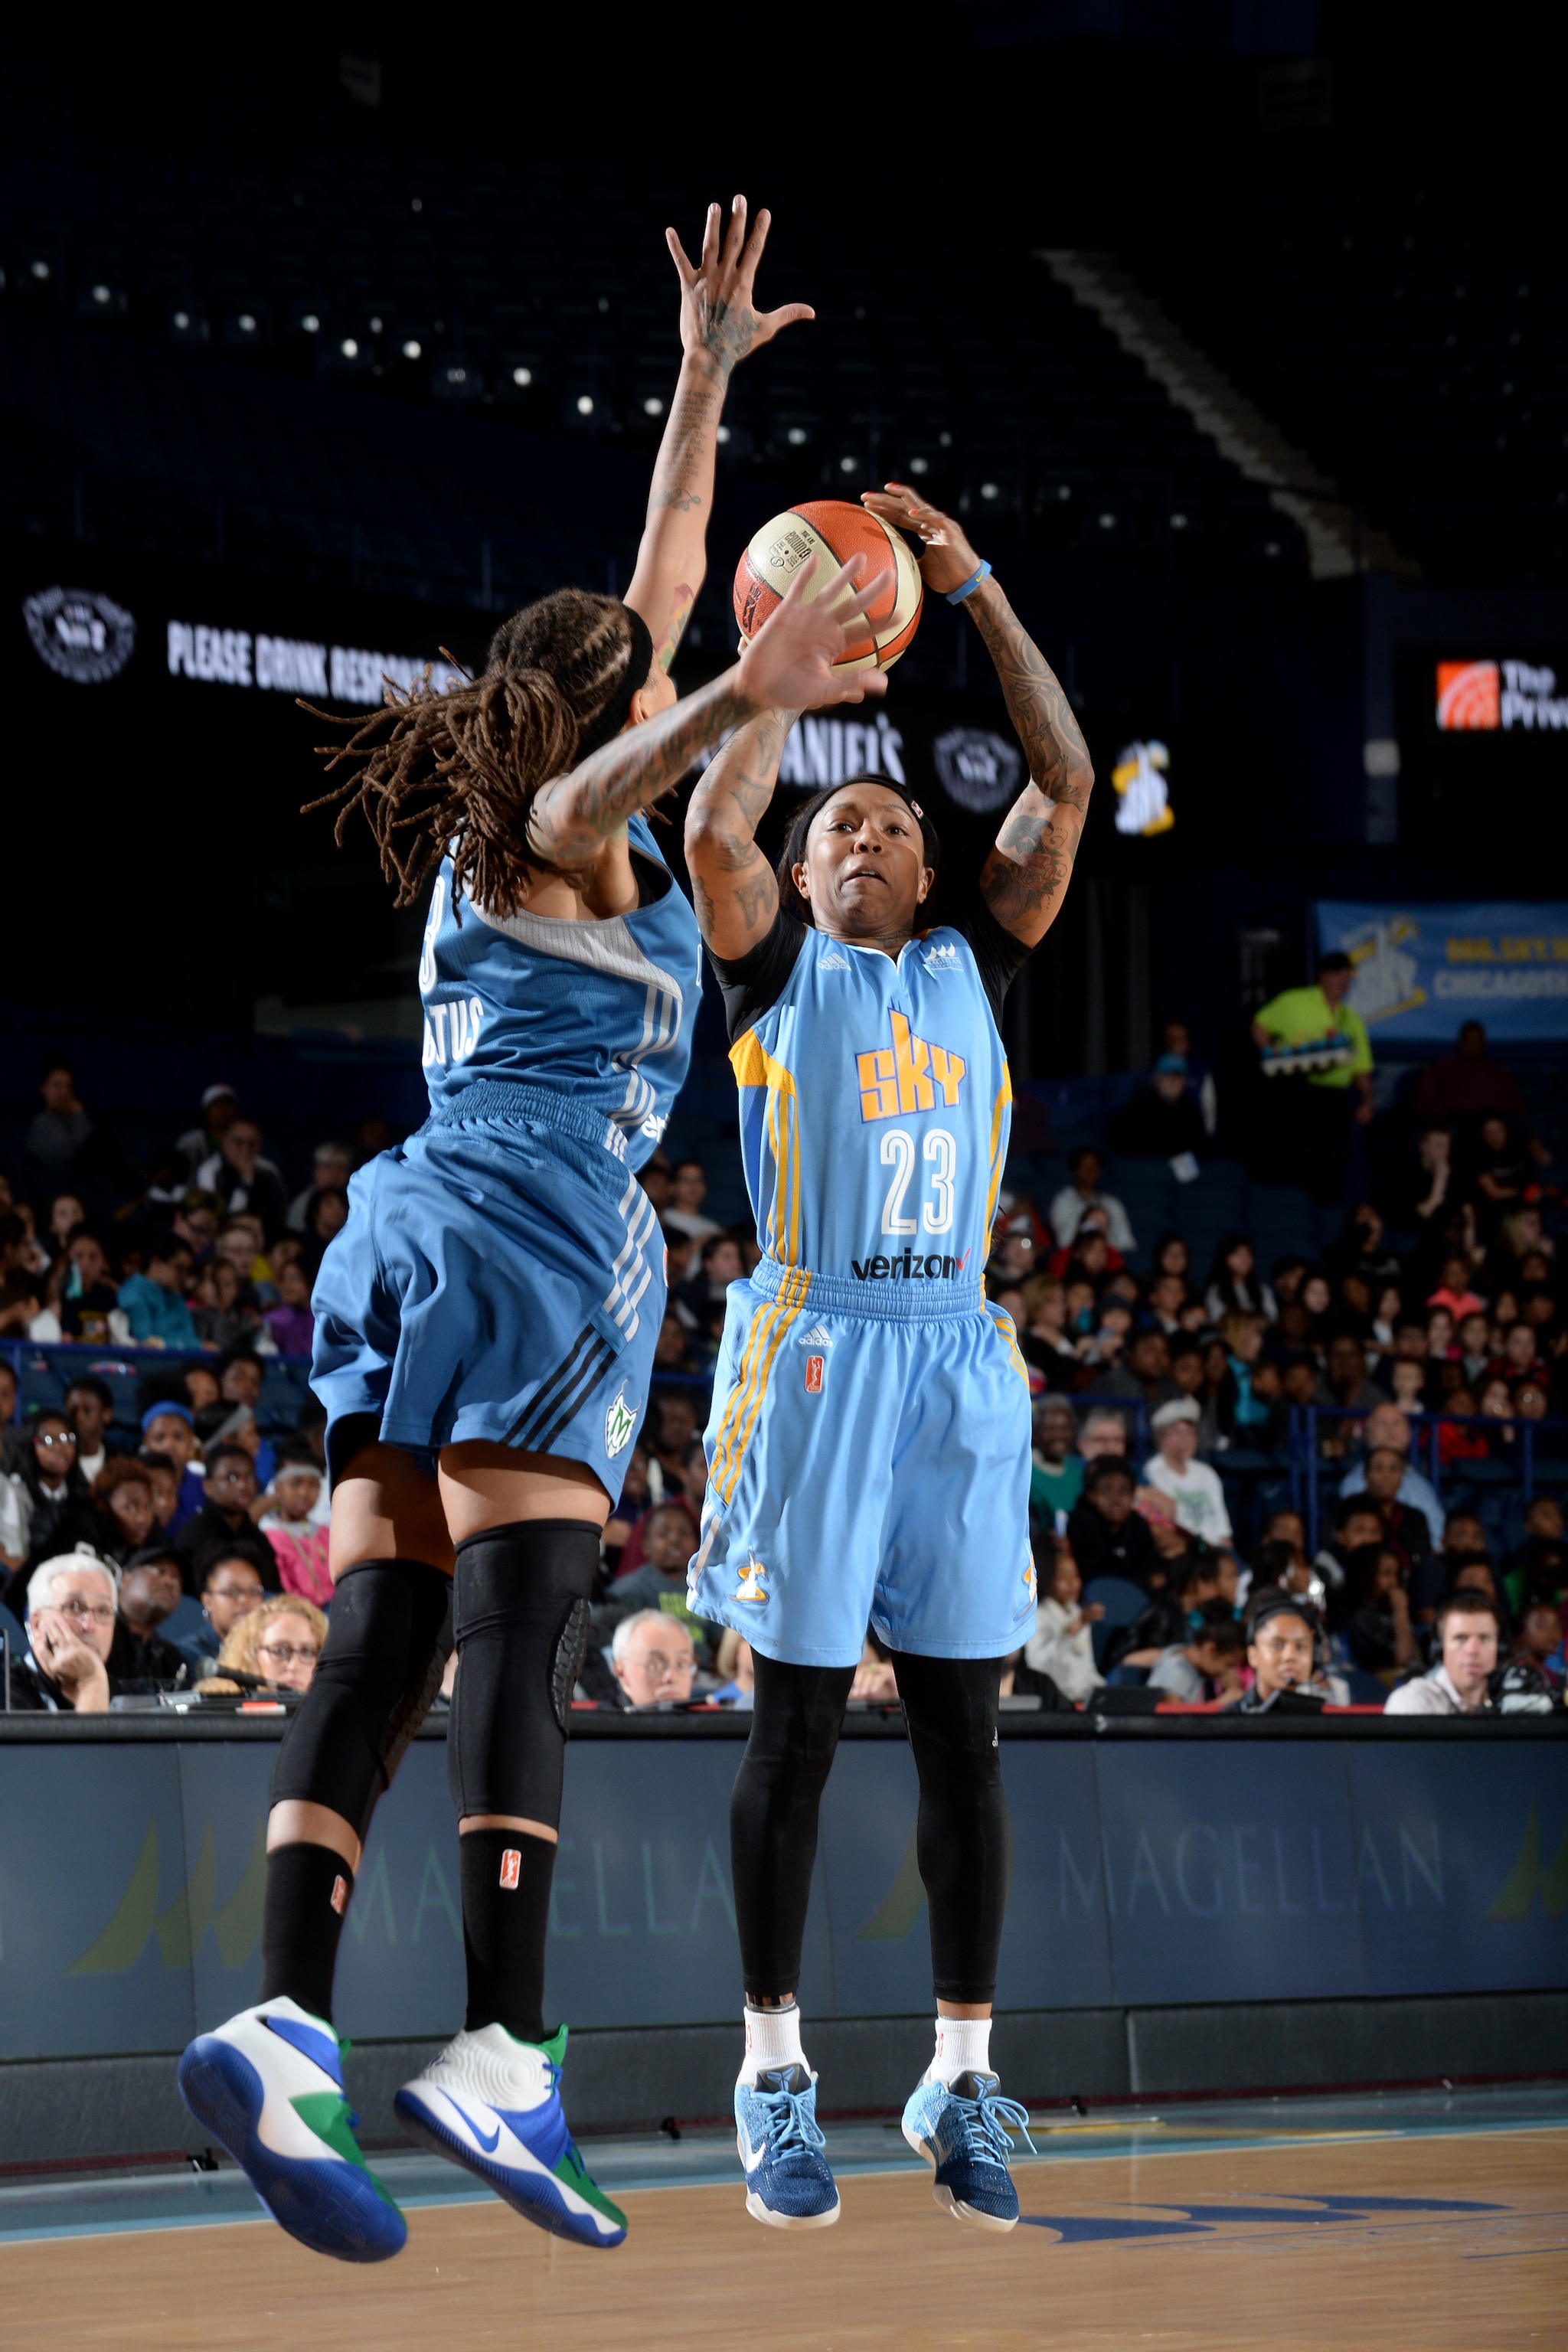 ROSEMONT, IL- MAY 18: Cappie Pondexter #23 of the Chicago Sky shoots the ball against the Minnesota Lynx on May 18, 2016 at the Allstate Arena in Rosemont, Illinois. NOTE TO USER: User expressly acknowledges and agrees that, by downloading and/or using this photograph, user is consenting to the terms and conditions of the Getty Images License Agreement. Mandatory Copyright Notice: Copyright 2016 NBAE (Photo by Randy Belice/NBAE via Getty Images)